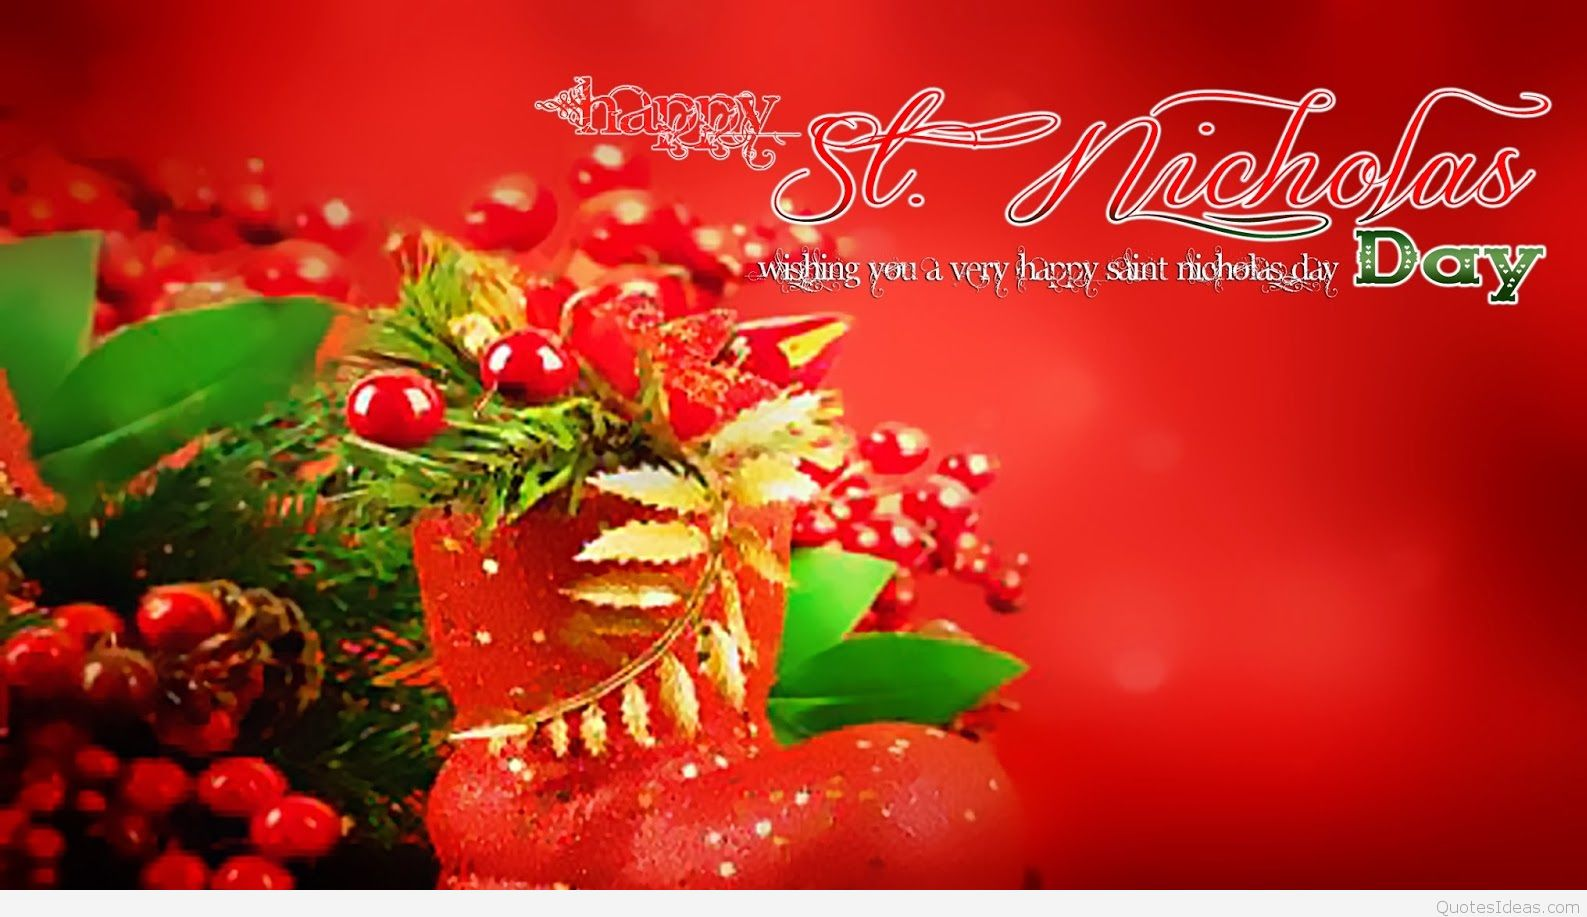 Background Happy St Nicholas Day 2015 wishes 1587x917